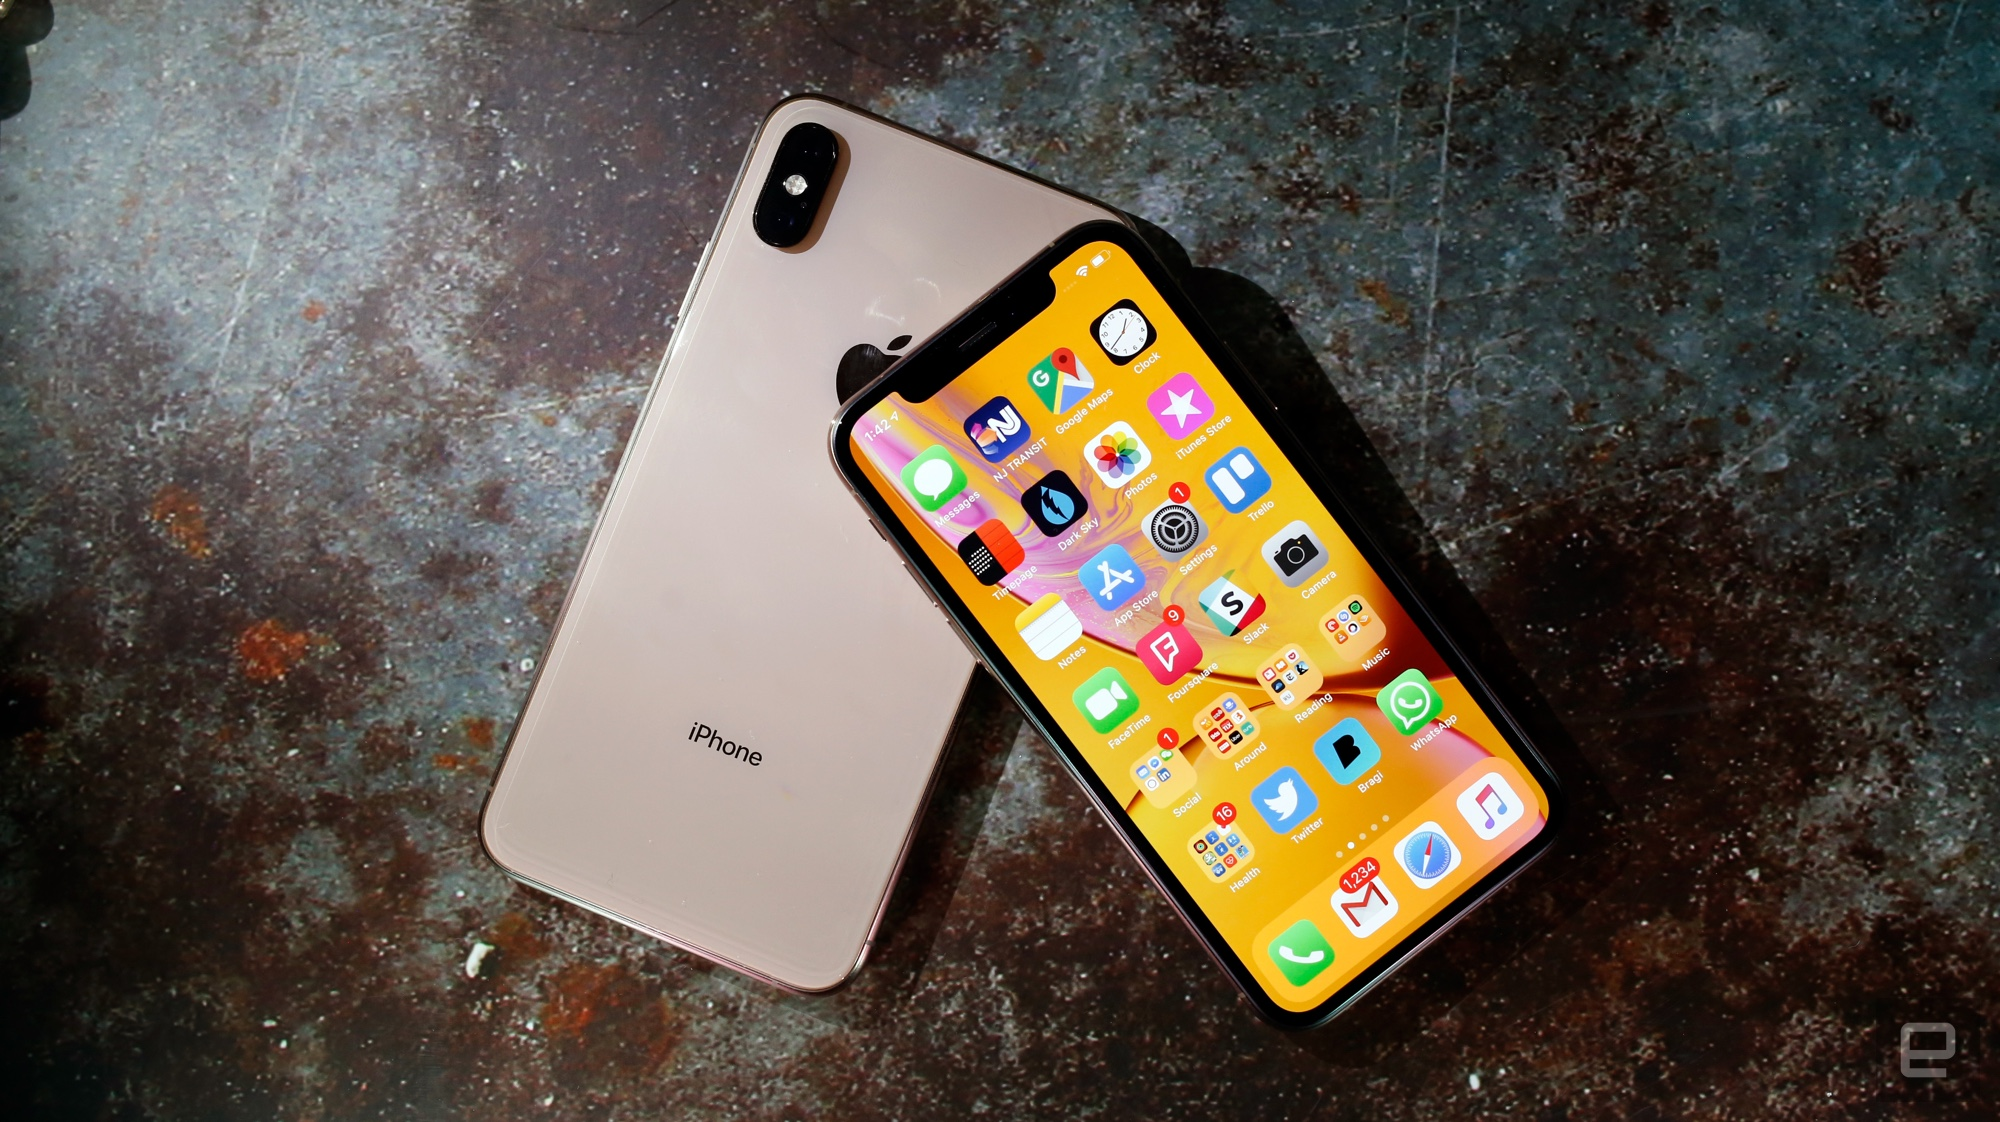 iPhone XS Max 64GB硬件成本只比iPhone X高20美元